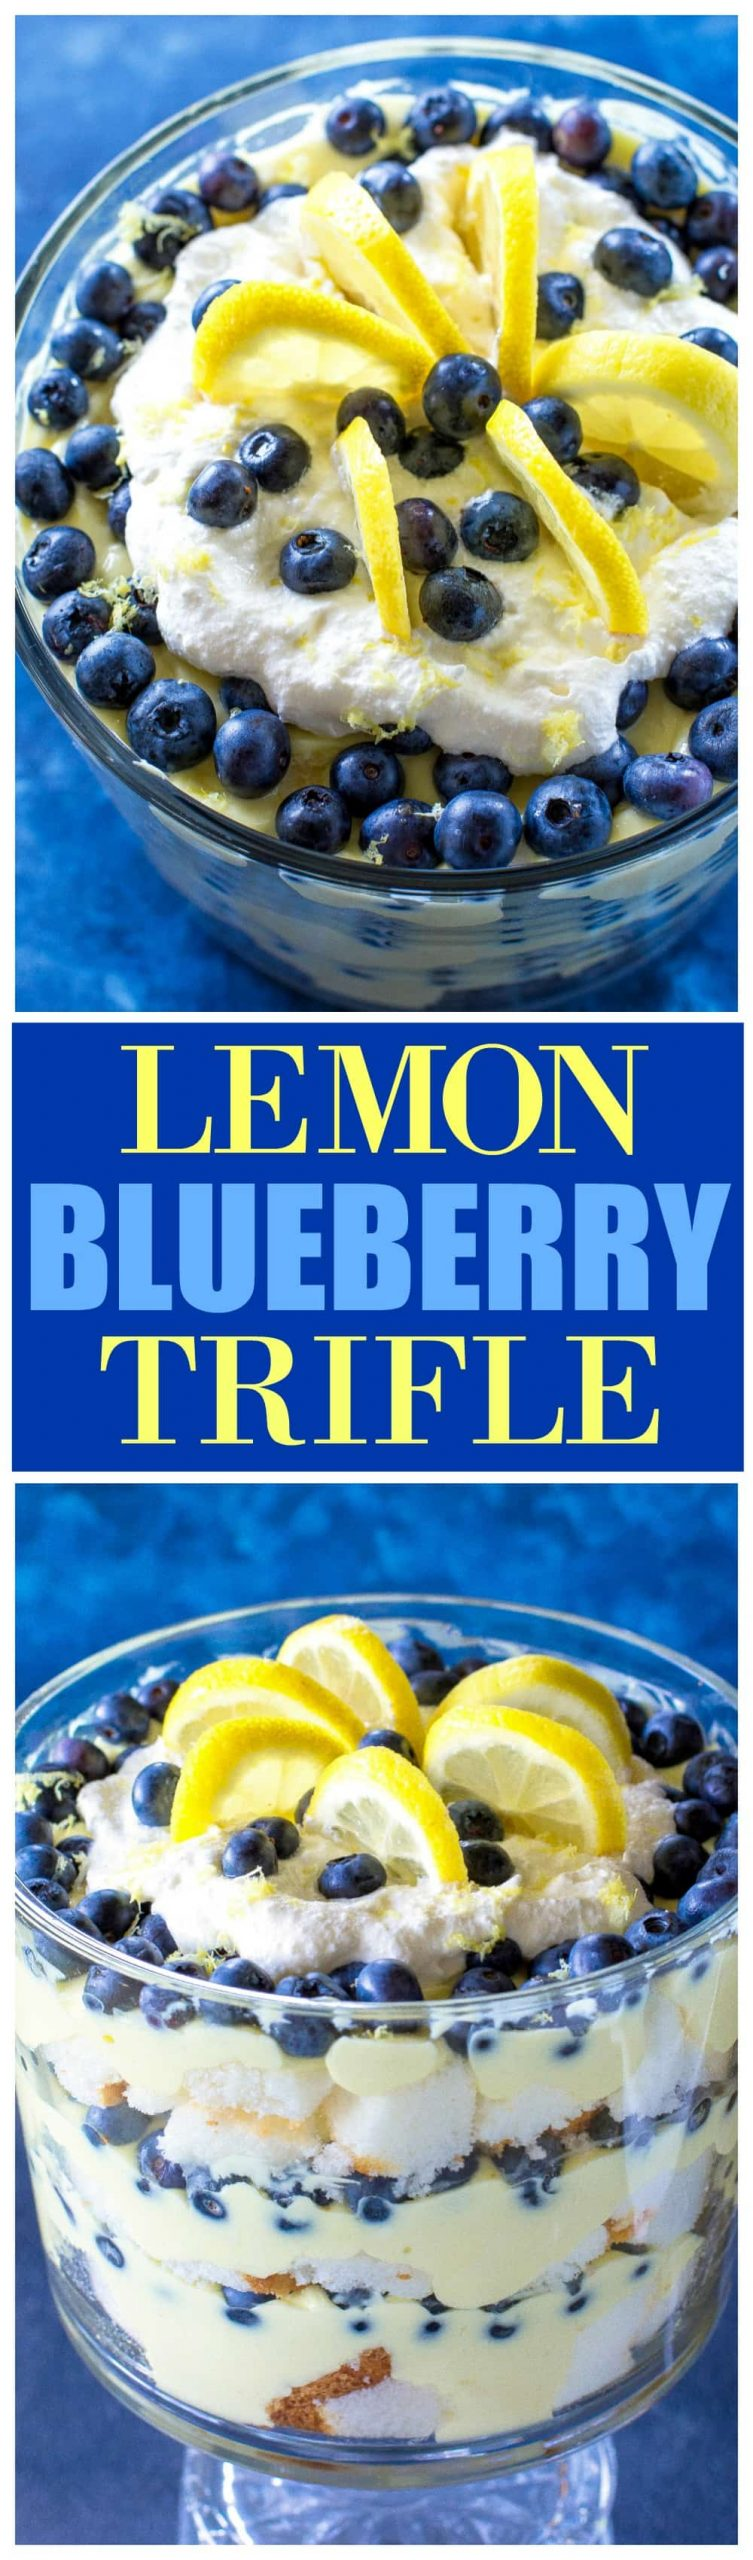 This Lemon Blueberry Trifle is layers of angel food cake, lemon pudding, and blueberries. A crowd pleasing dessert! #blueberry #lemon #trifle #dessert #recipe